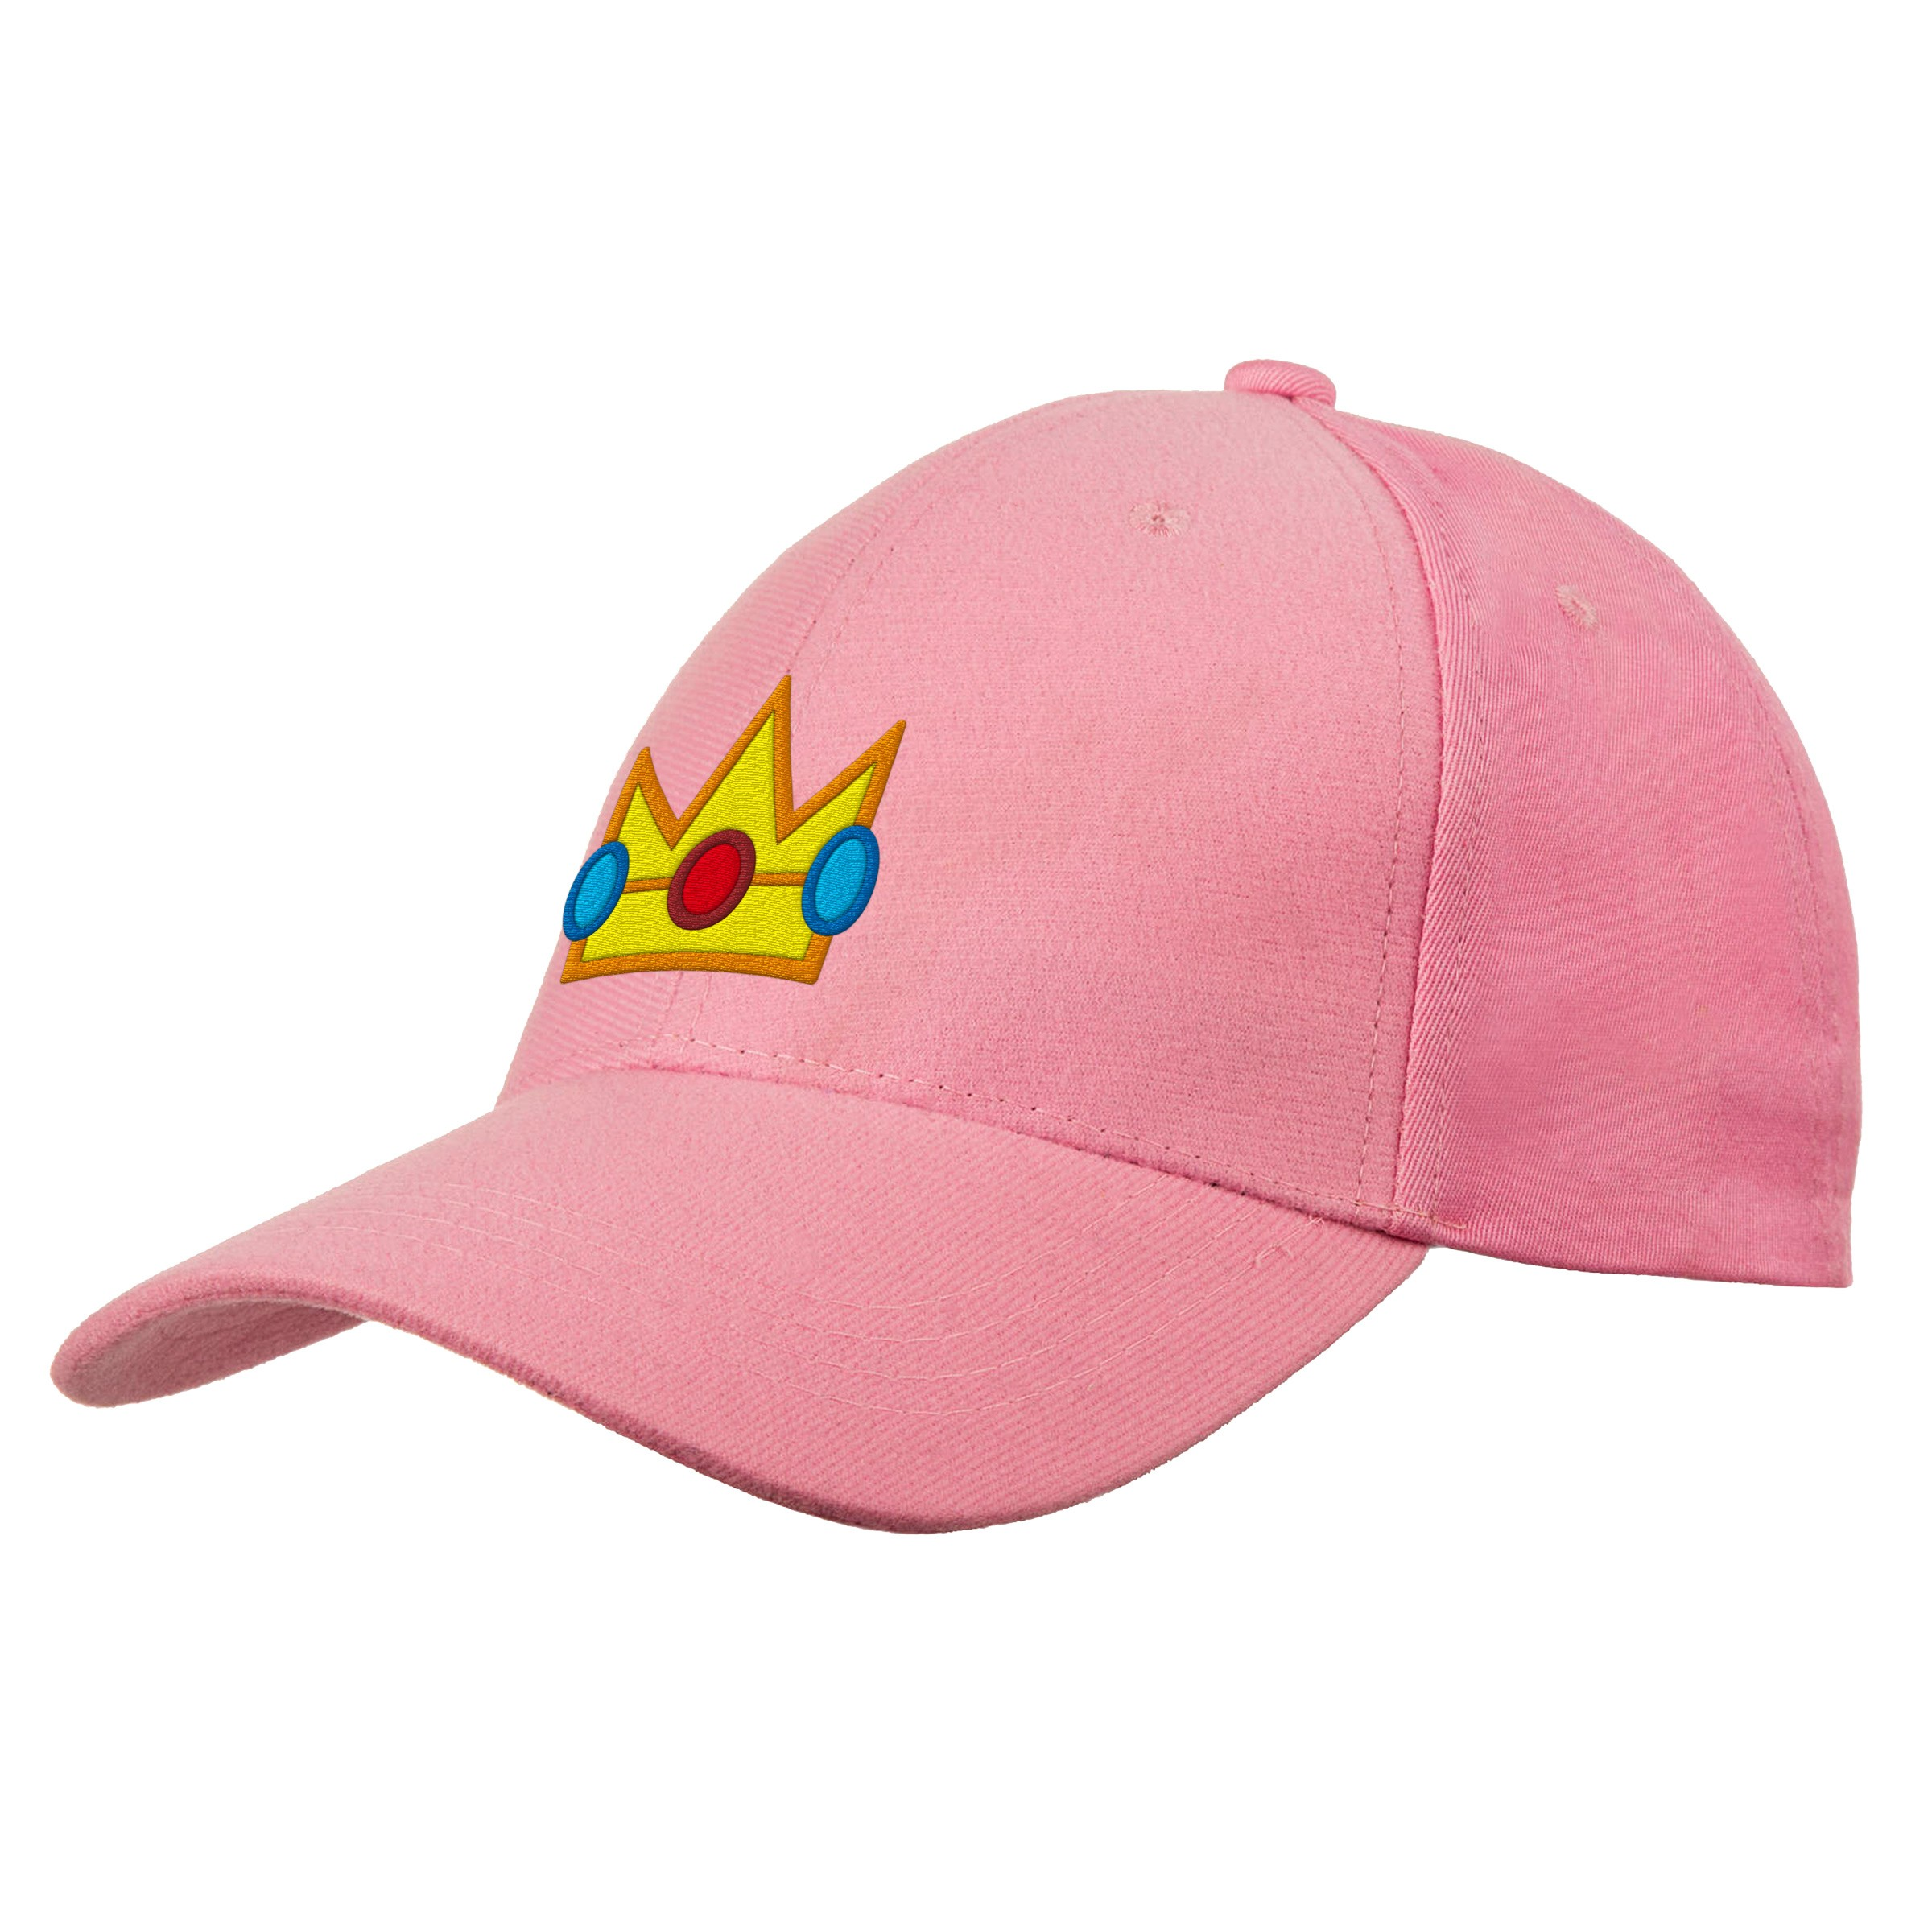 "Super Mario™ ""Peach's Crown"" Dad Hat - Officially Licensed by Nintendo"